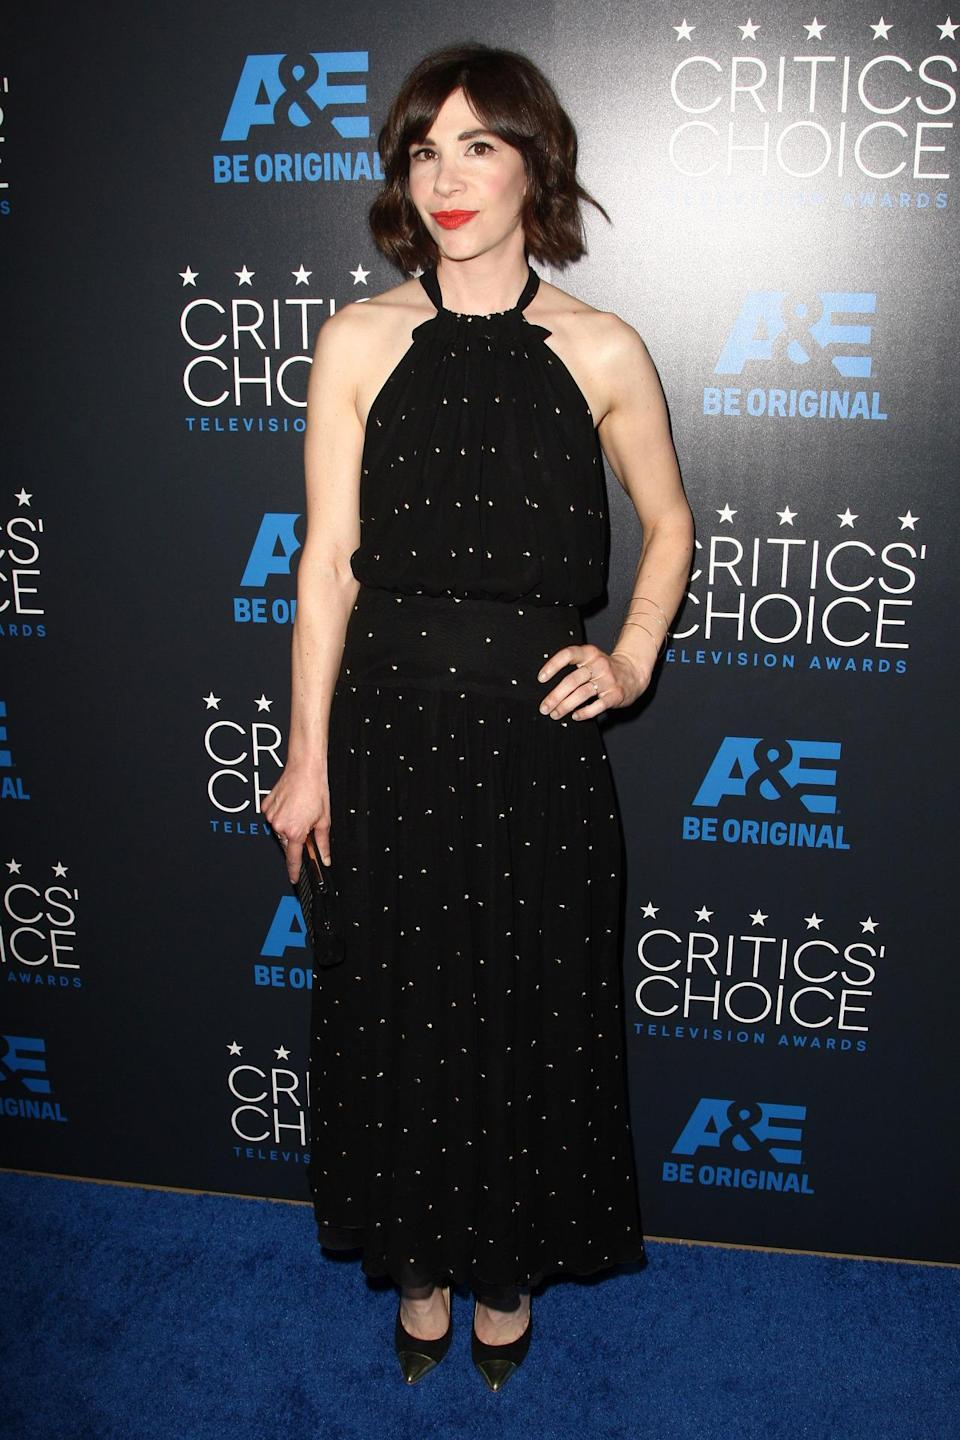 Carrie Brownstein's Philosophy dress is one of those pieces that can go from day to night with accessorizing. After this red carpet, the actress can wear it again!